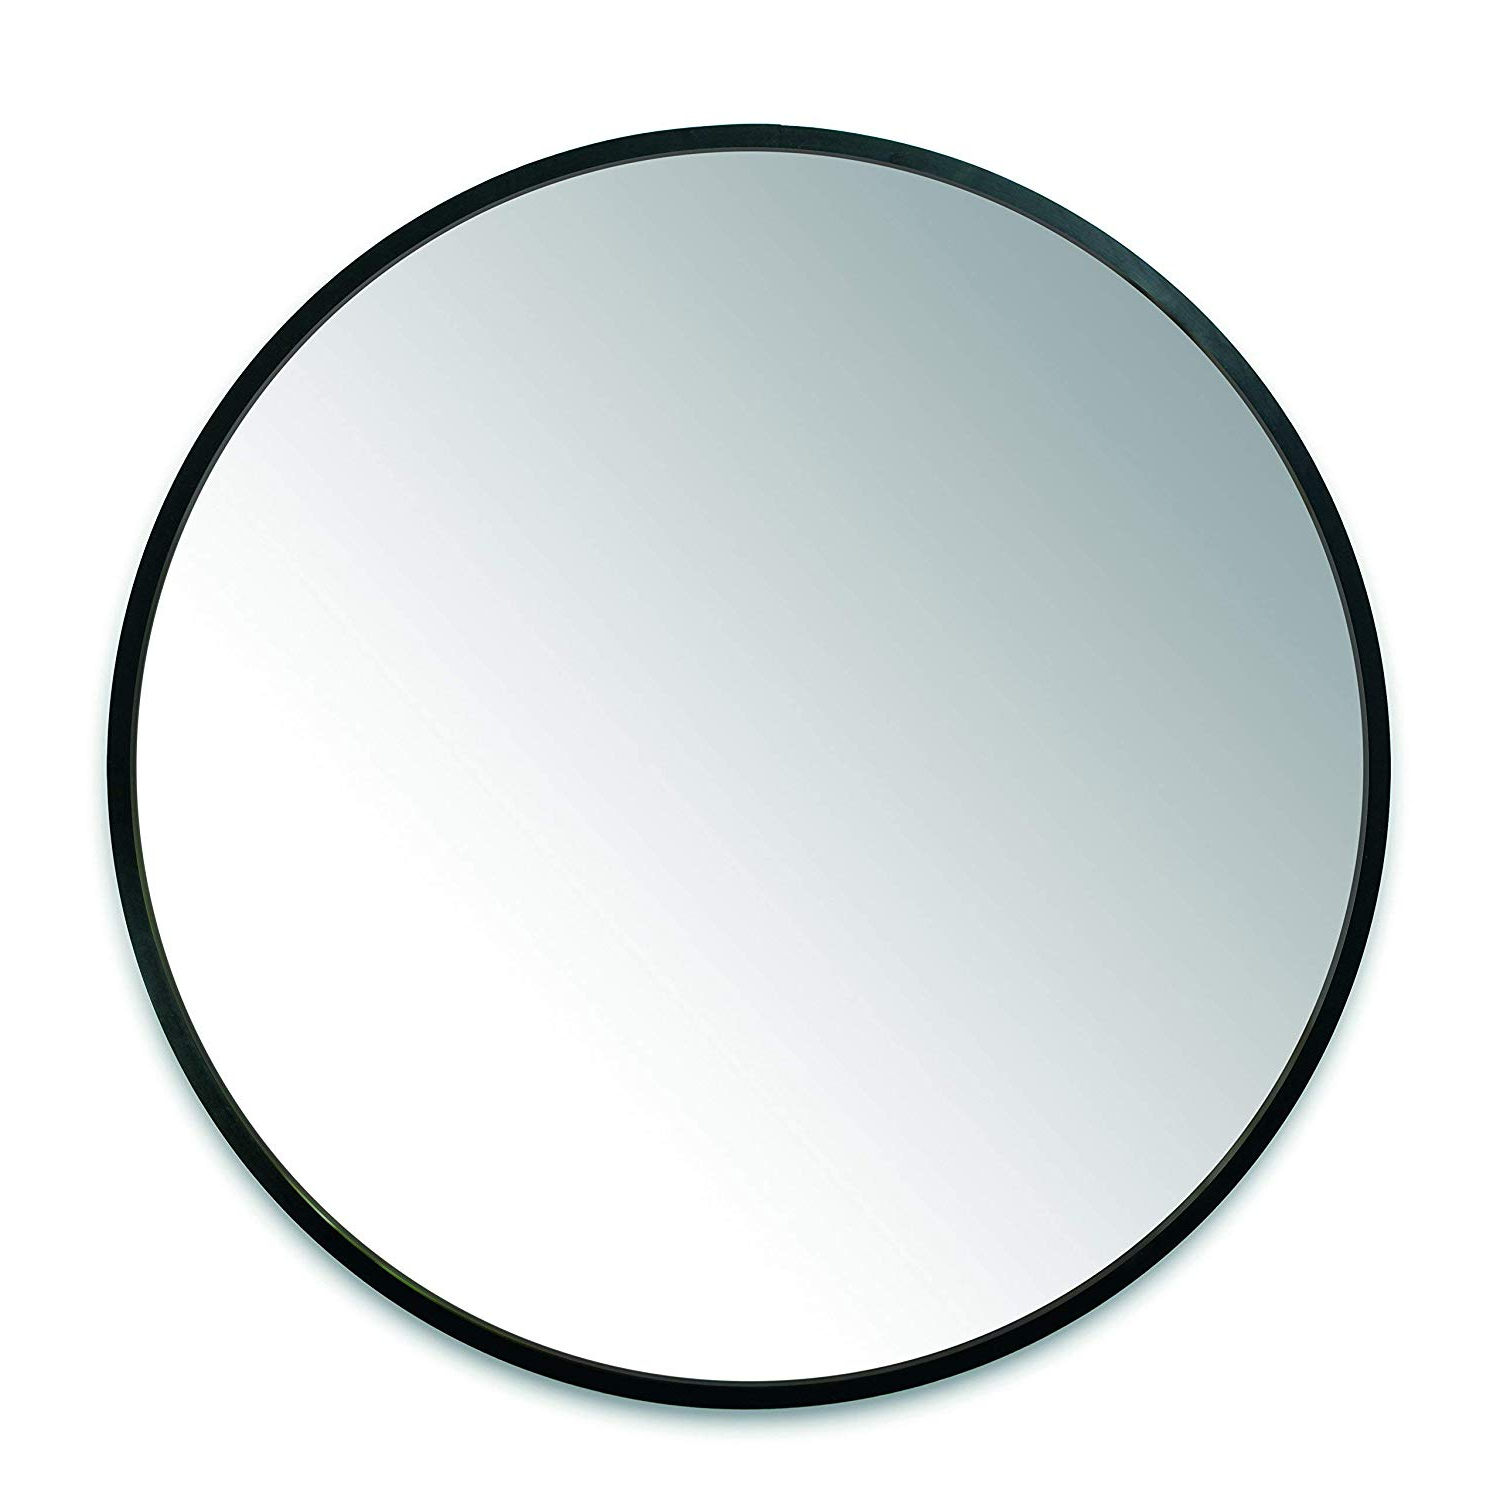 Current Black Frame Wall Mirrors For Umbra Hub Wall Mirror With Rubber Frame – 24 Inch Round Wall Mirror For Entryways, Washrooms, Living Rooms And More, Doubles As Modern Wall Art, Black (View 16 of 20)